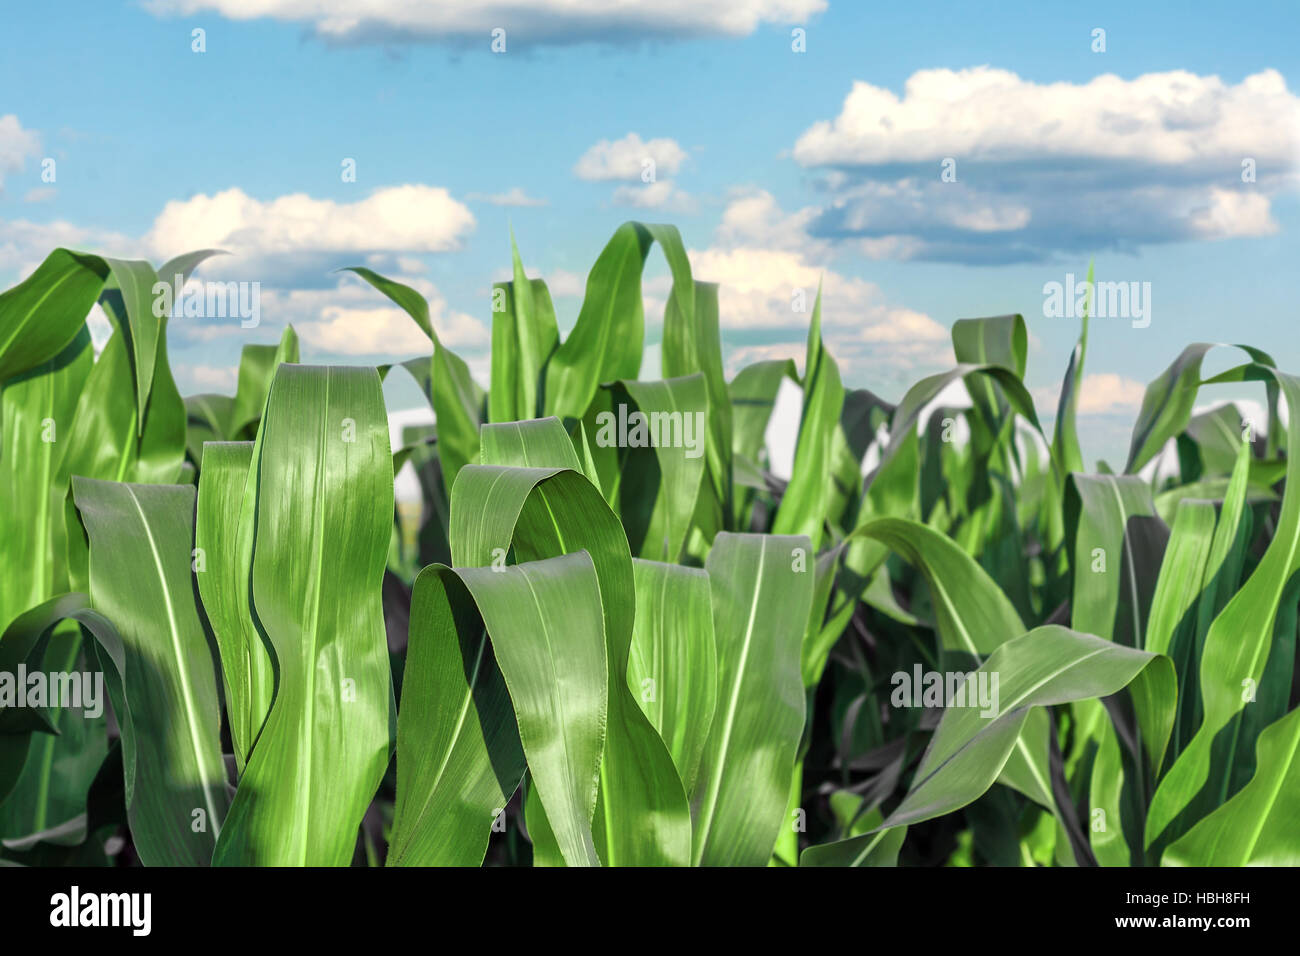 Stems of corn - Stock Image